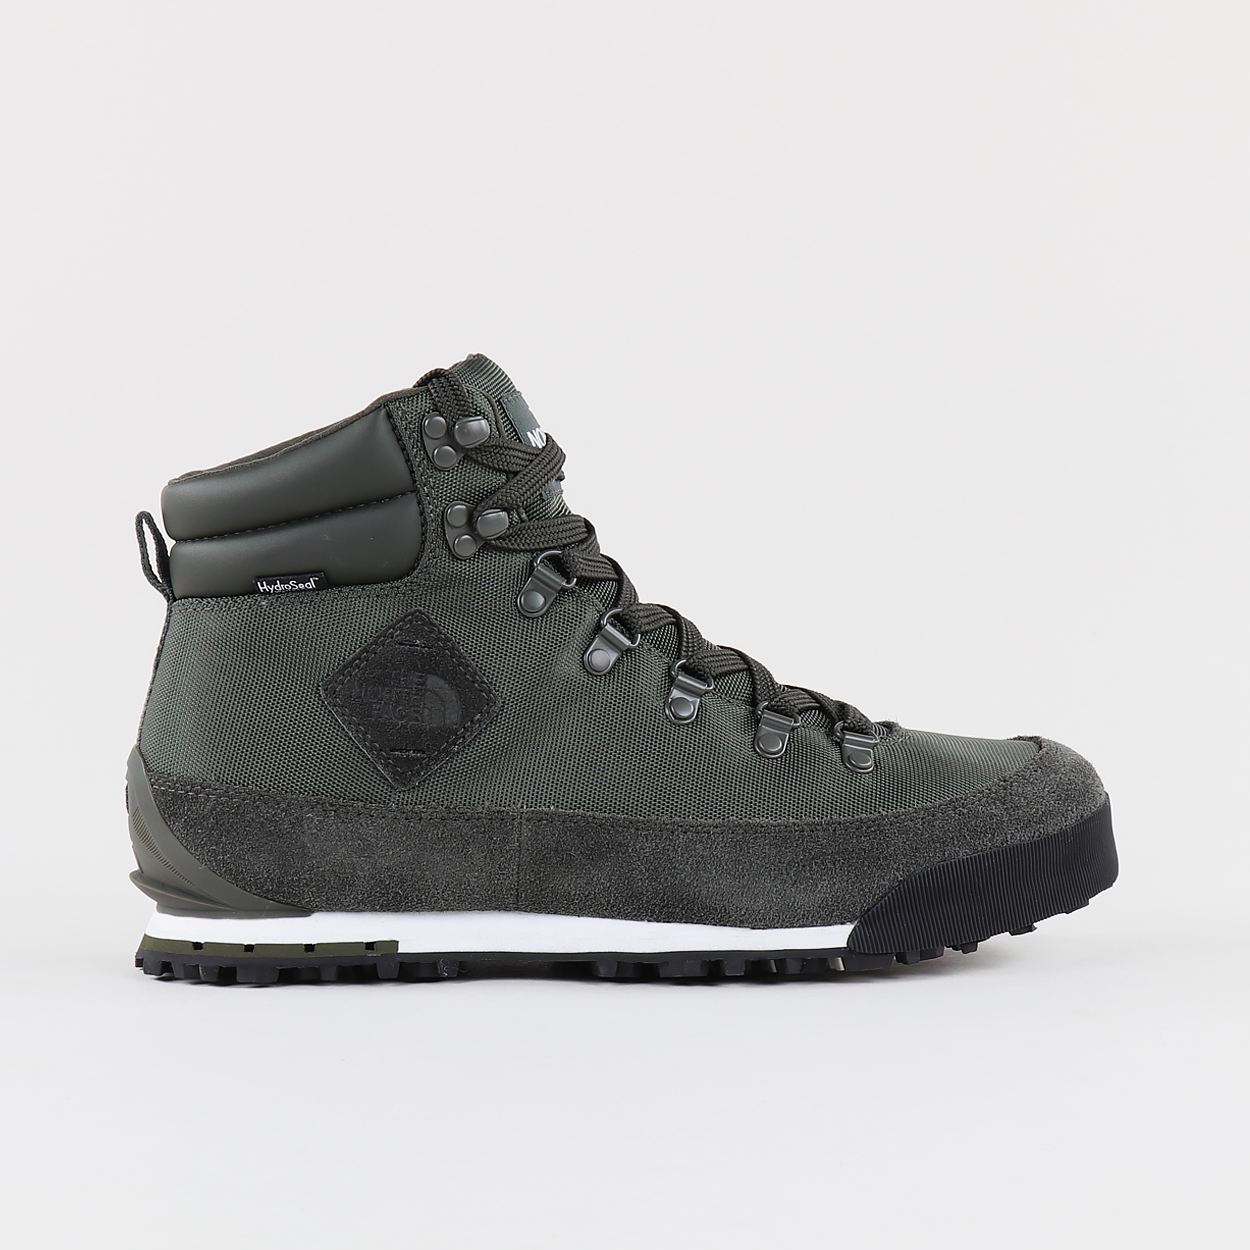 The North Face Back-To-Berkeley Redux Boots Black Ink Green £84.00 0b7fcee64a